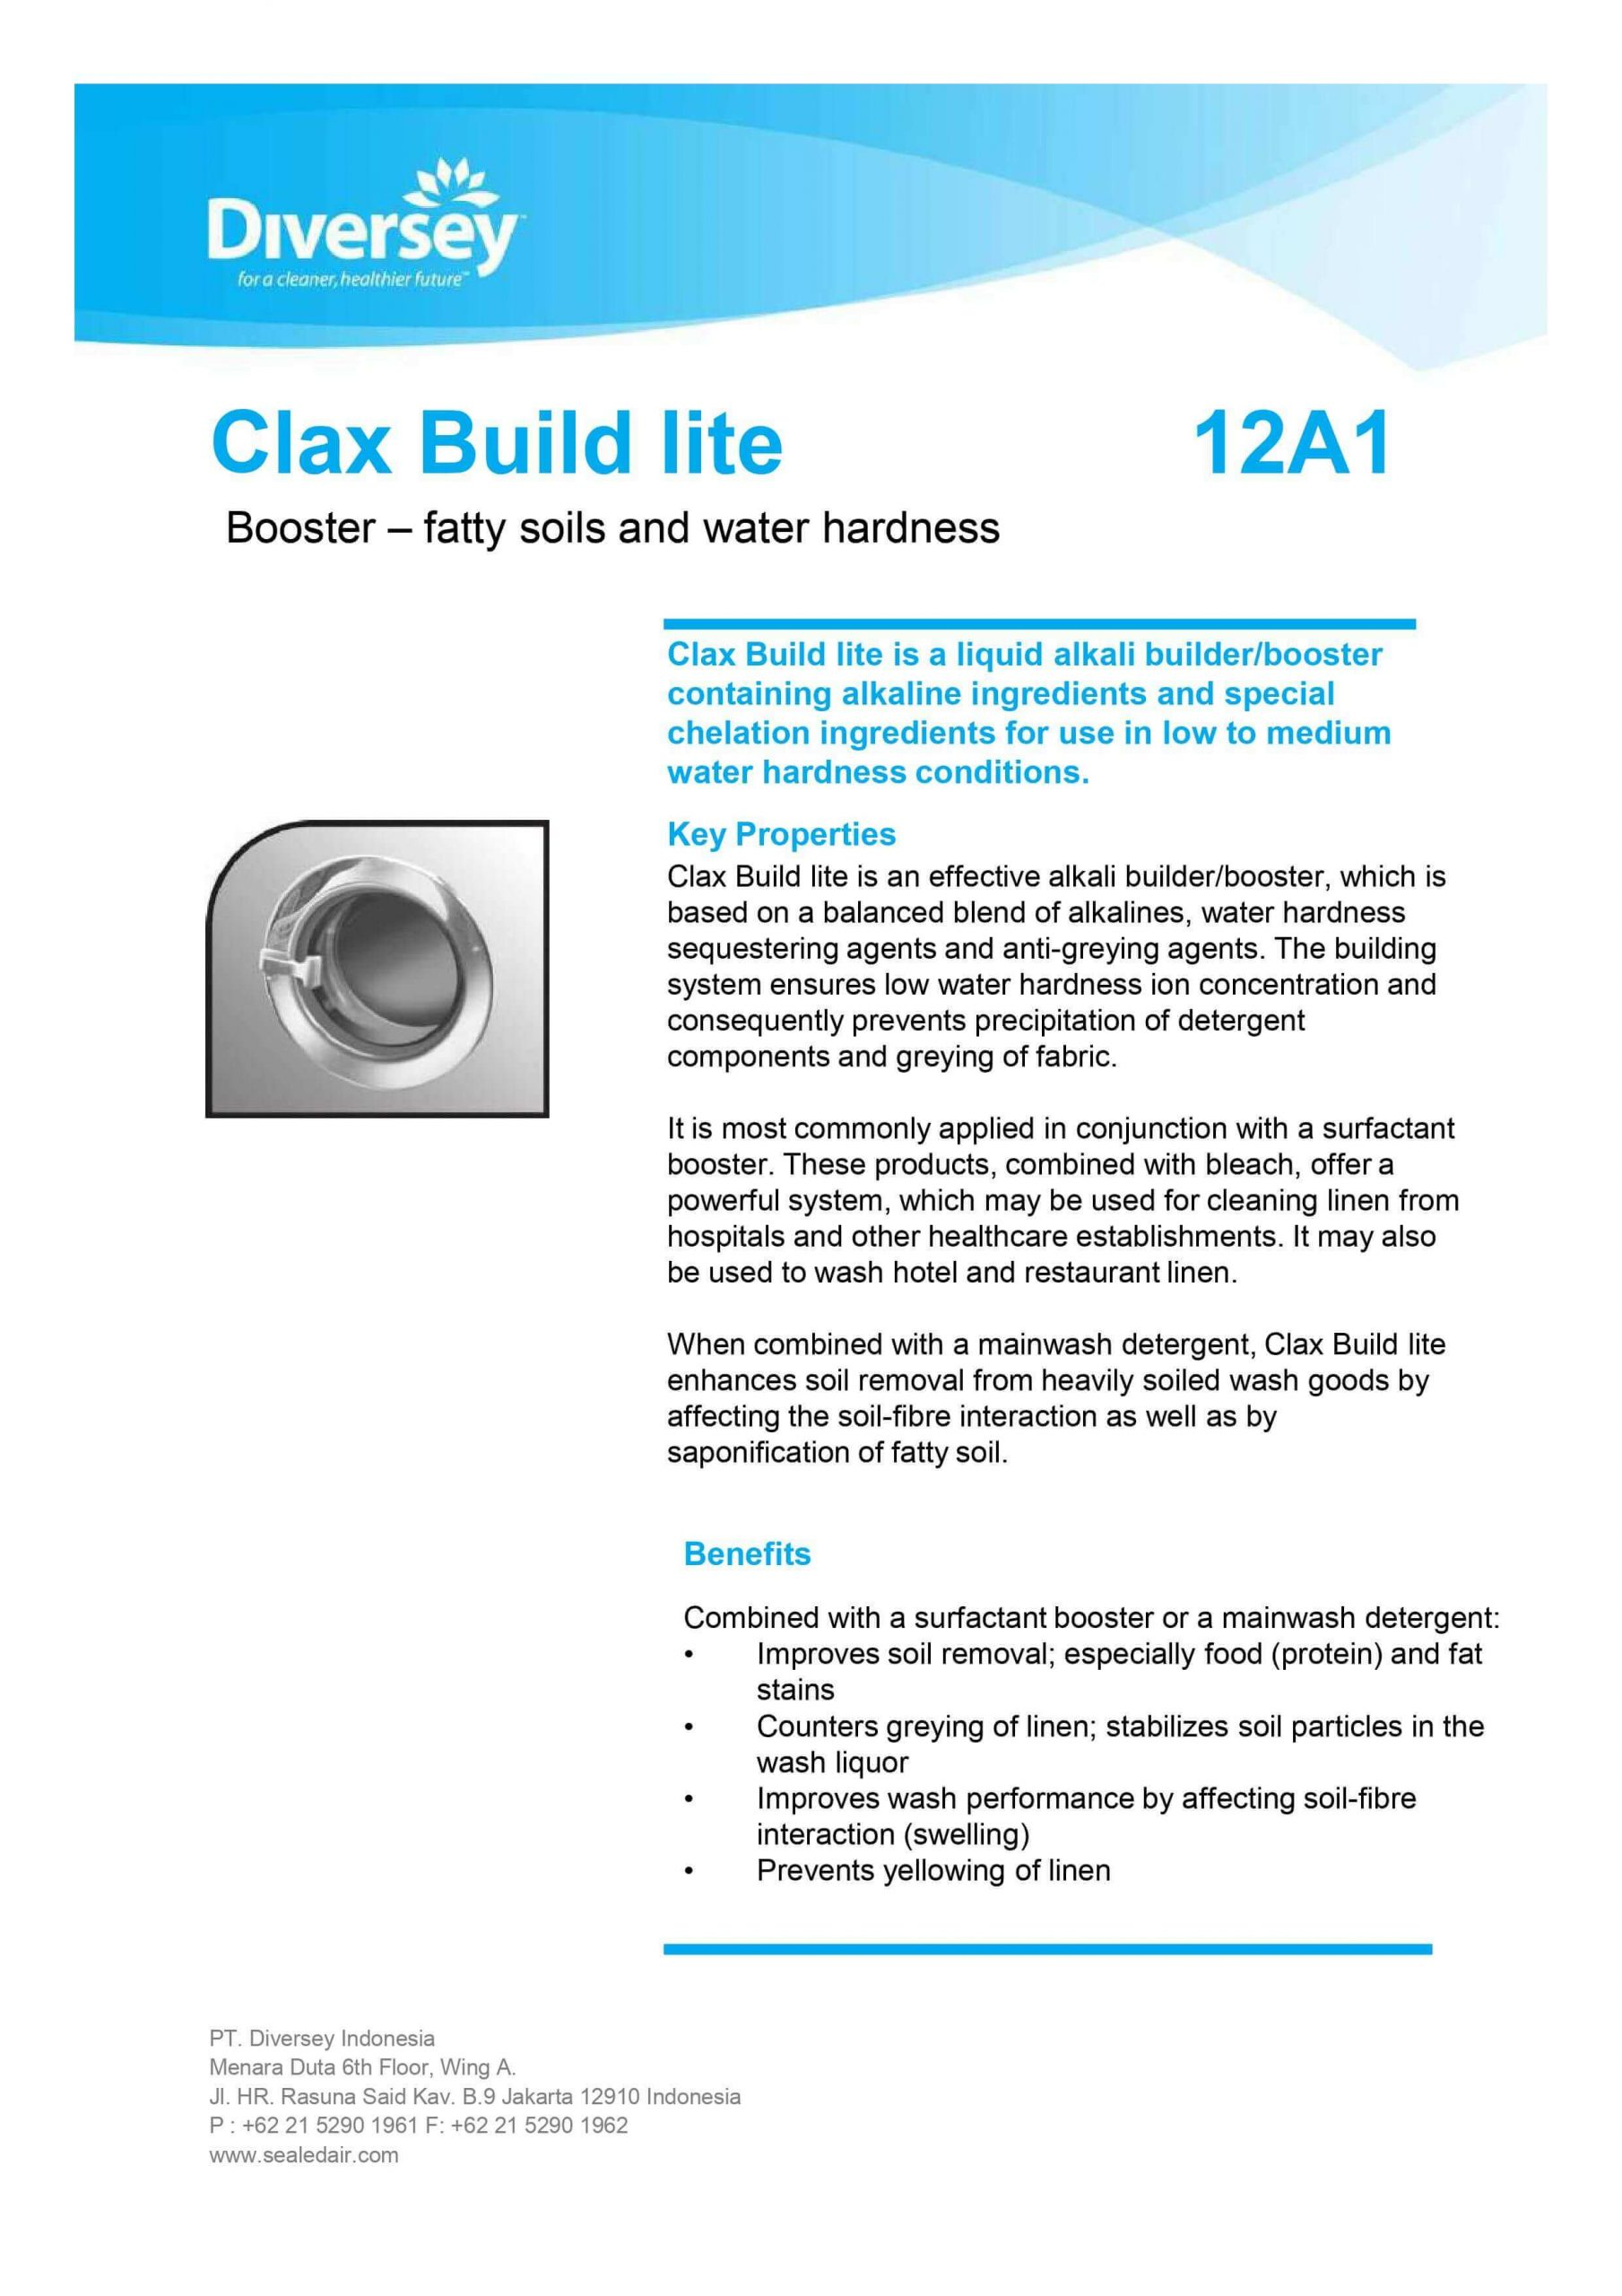 Laundry Diversey Clax Build Lite